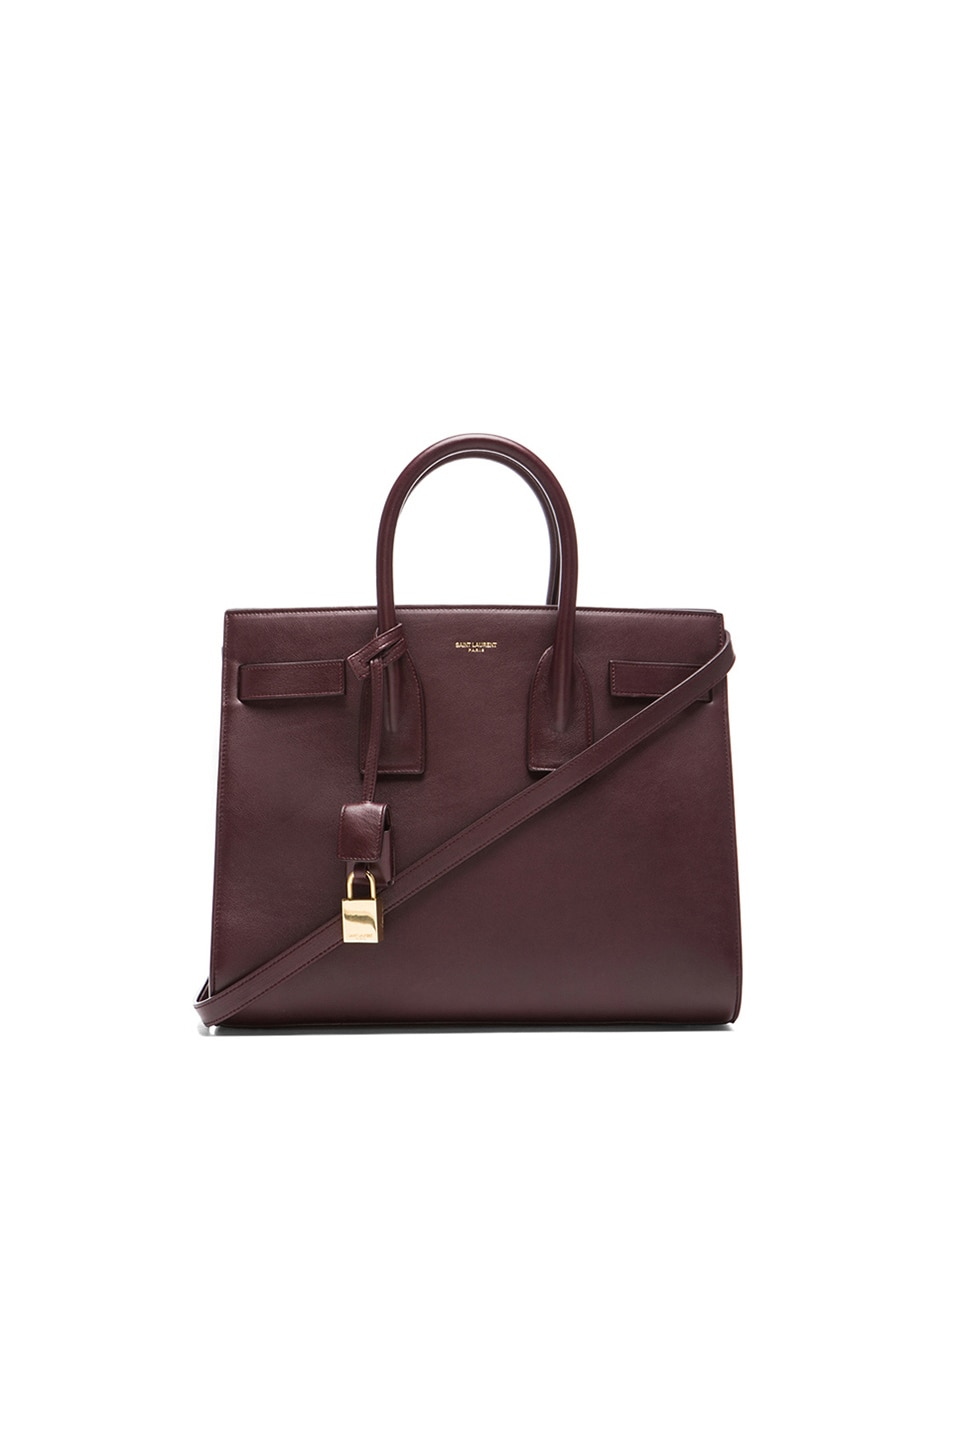 Image 1 of Saint Laurent Small Sac De Jour Carryall Bag in Bordeaux